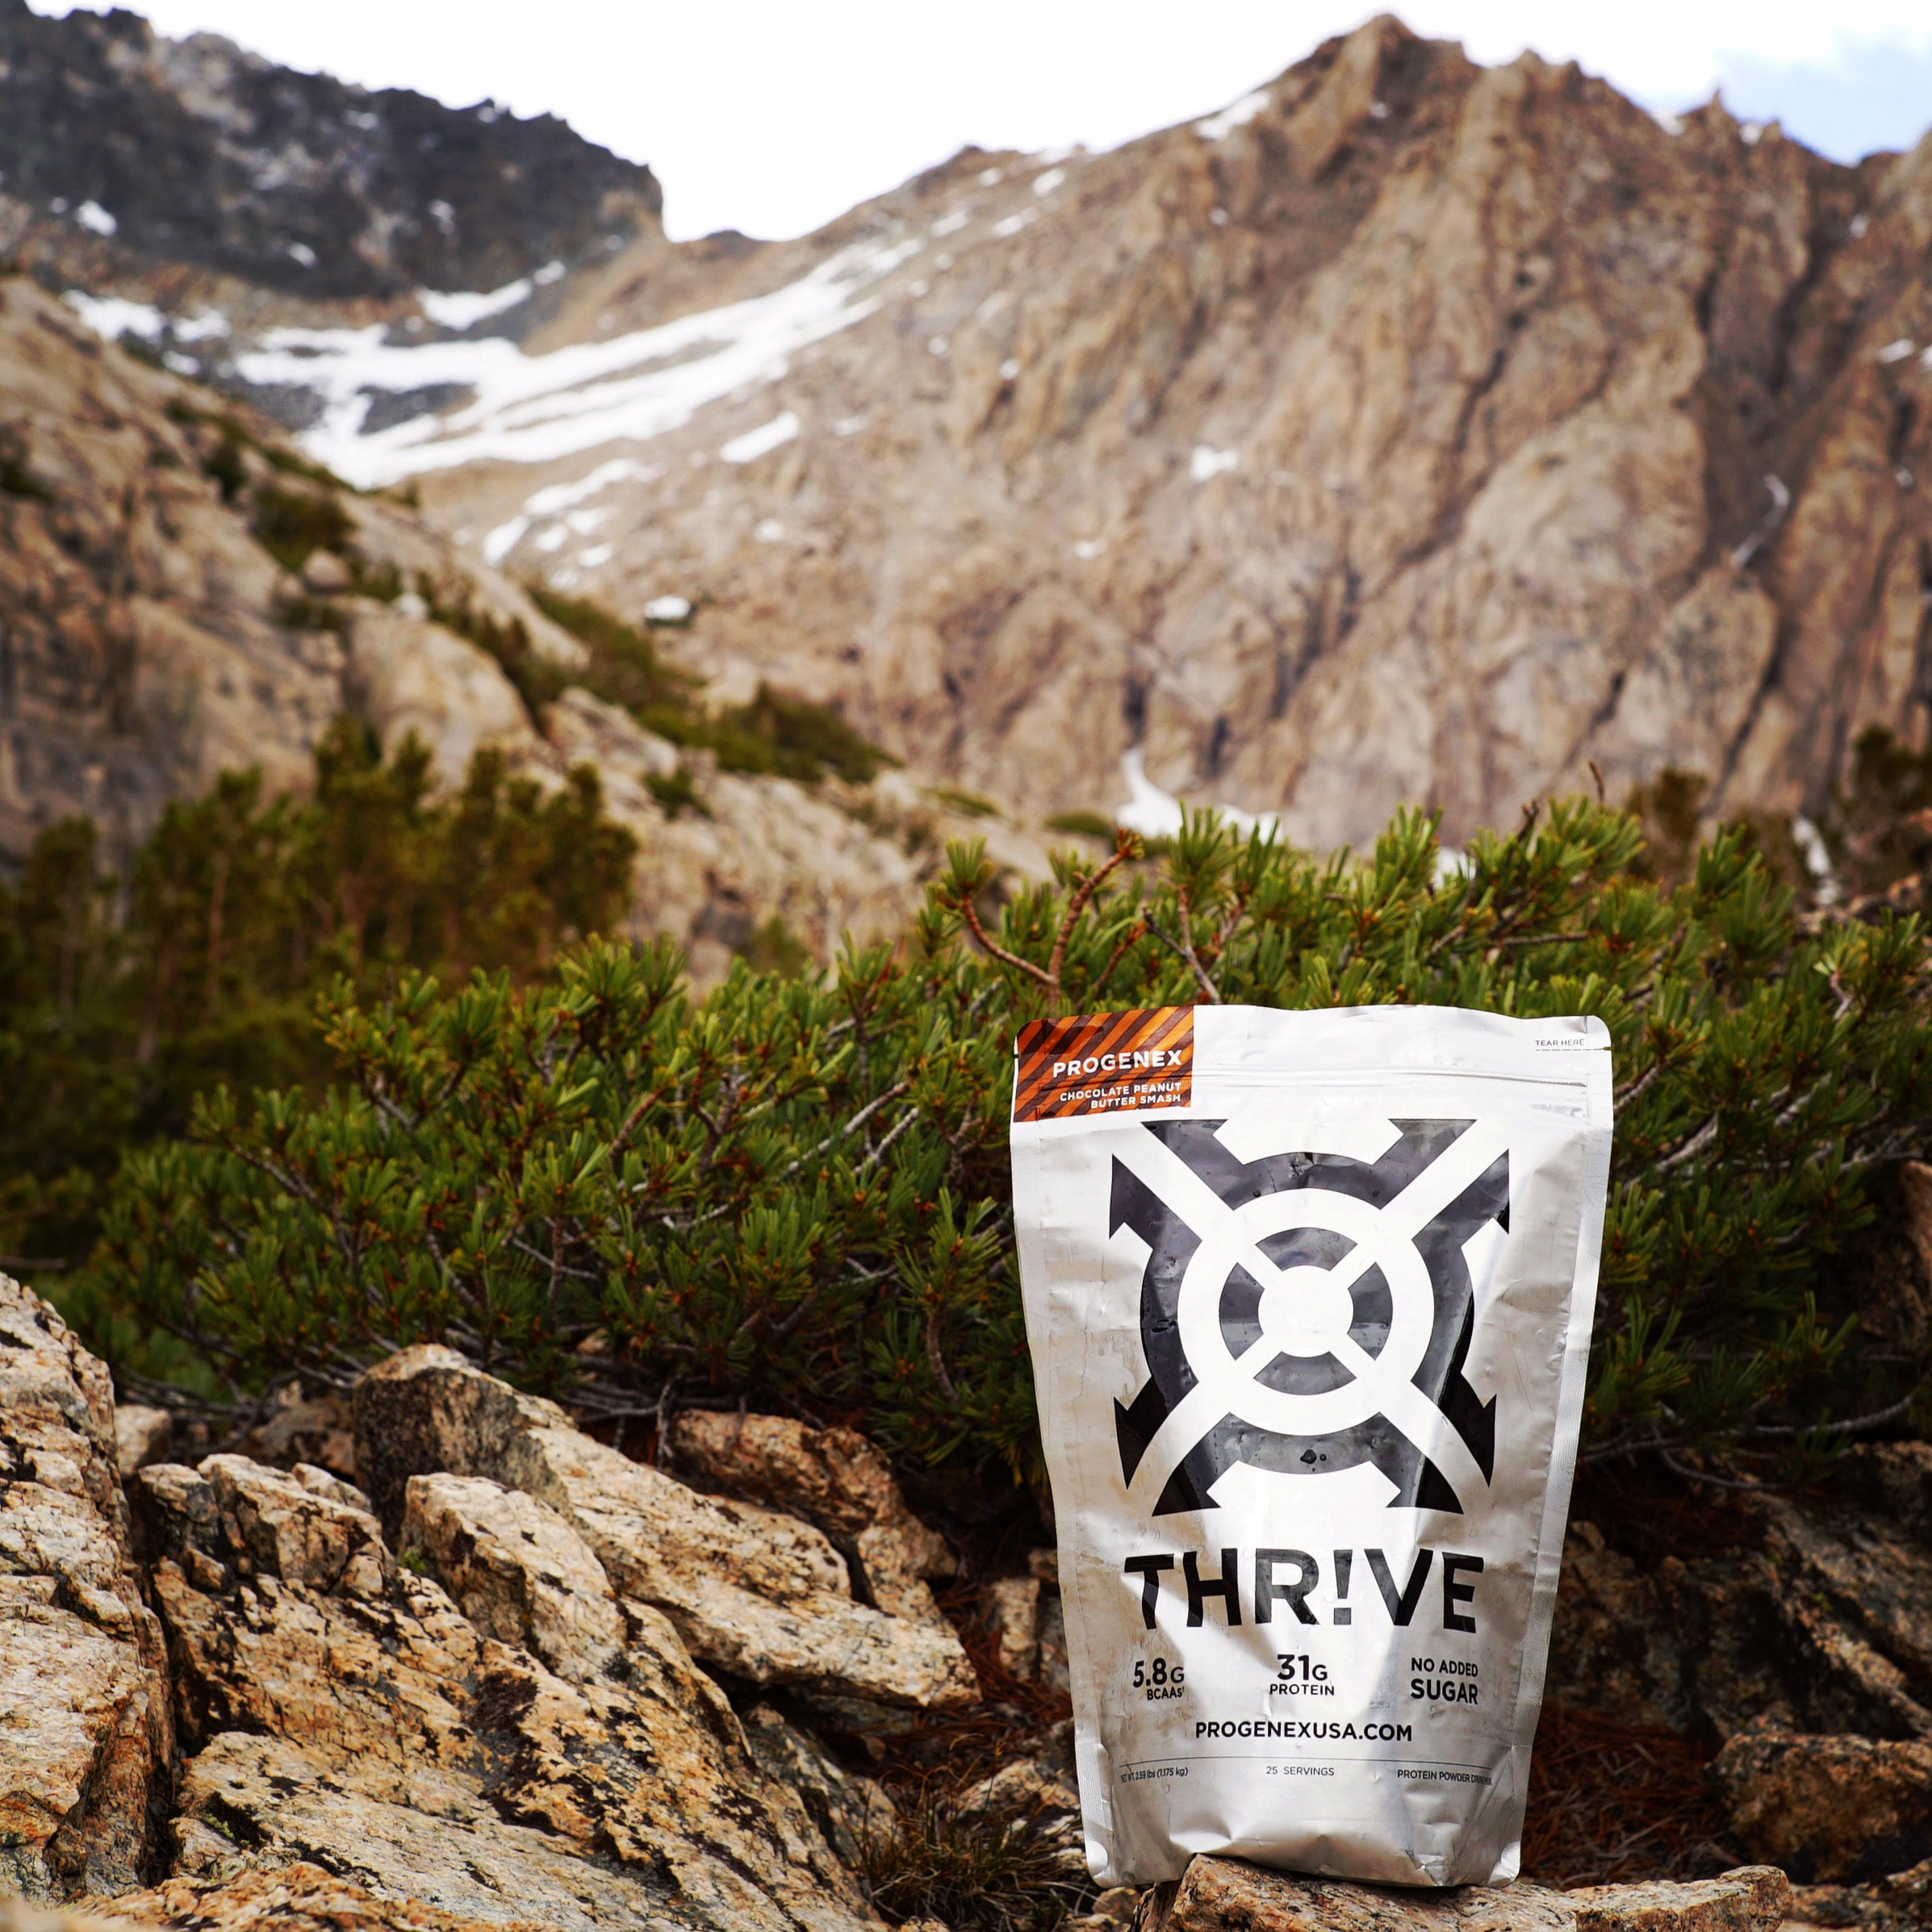 Bag of Progenex Thrive in front of a mountain.